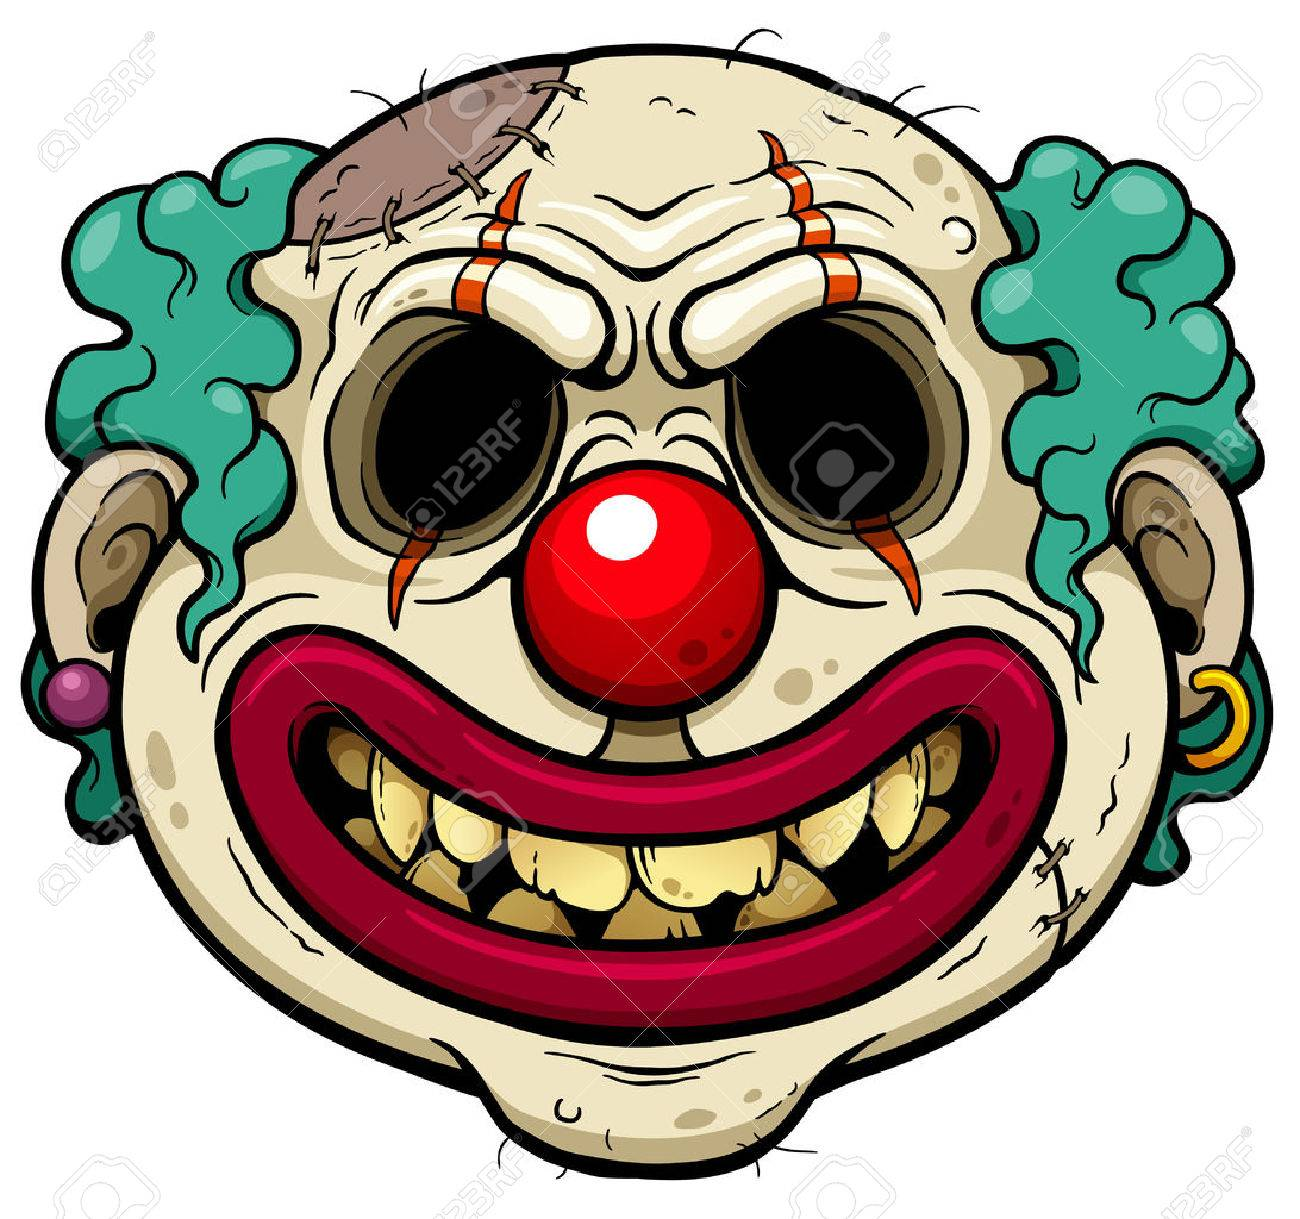 937 scary clown stock vector illustration and royalty free scary